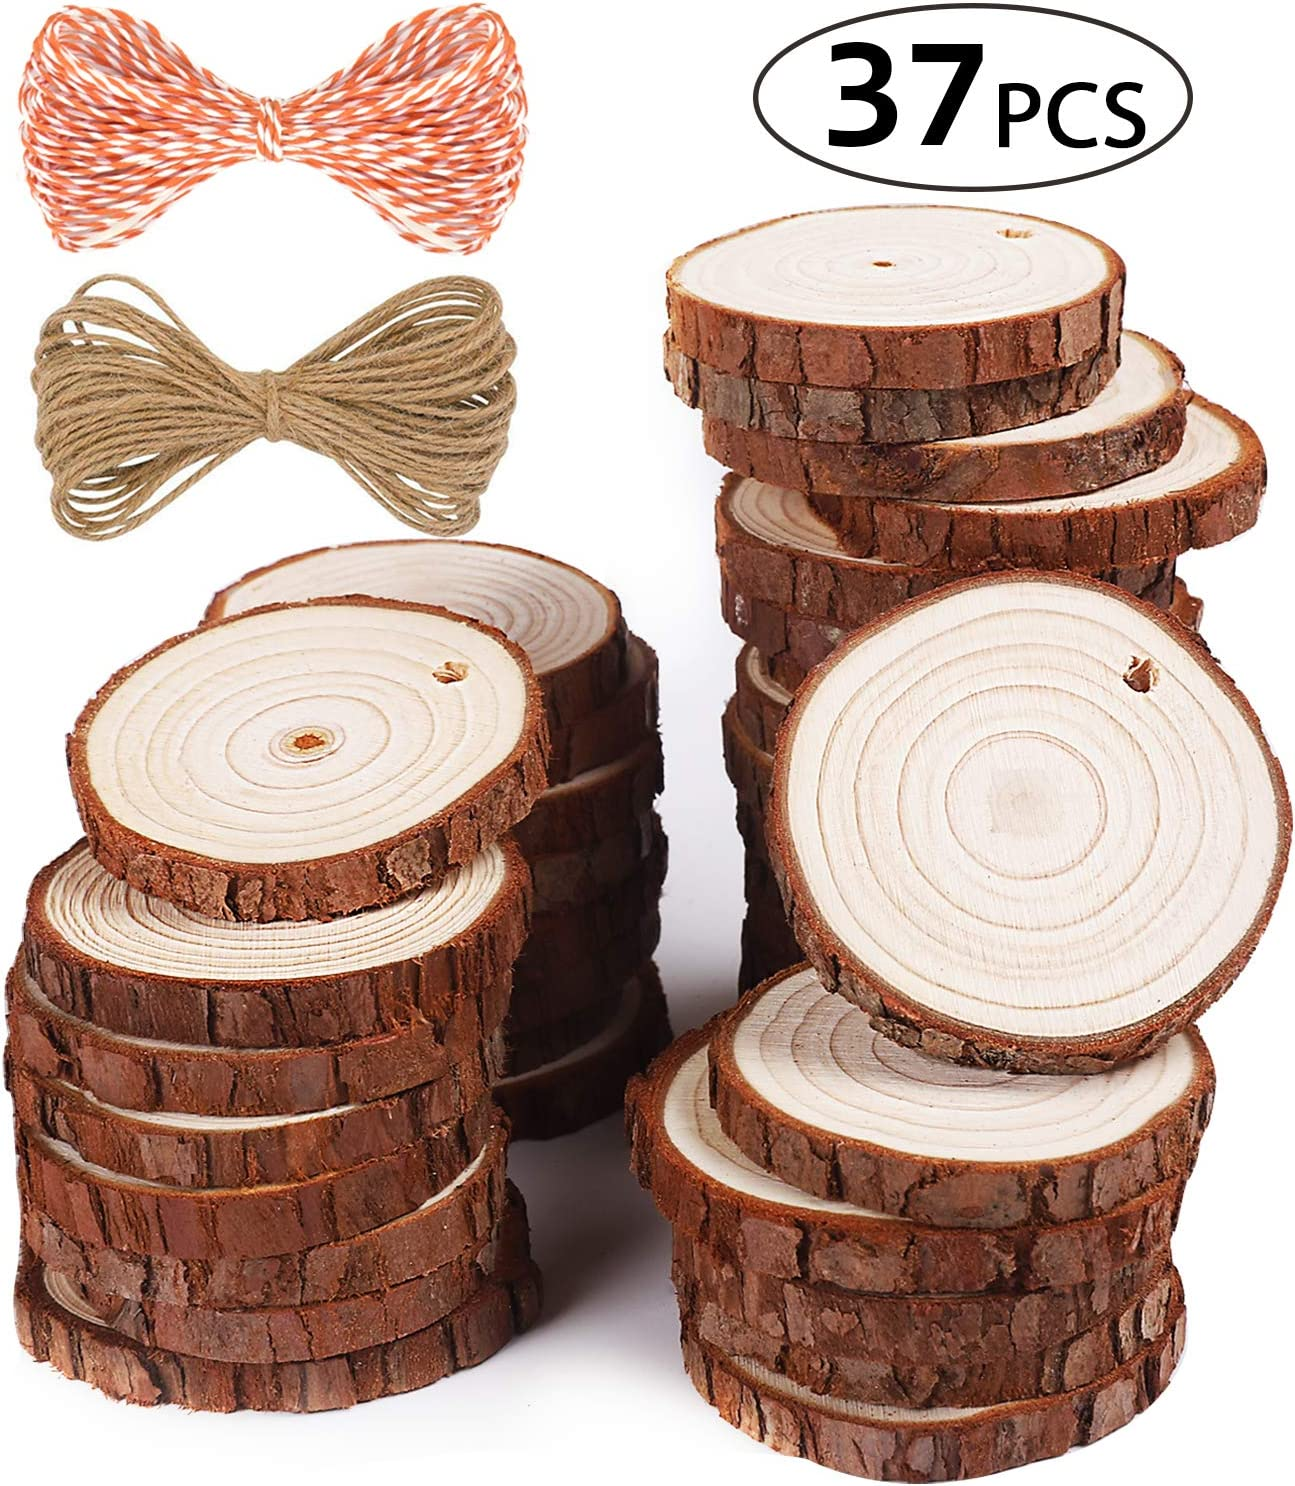 Scrapbooking Wood DIY Crafts Wooden Slice Wood Pieces Hanging Ornaments